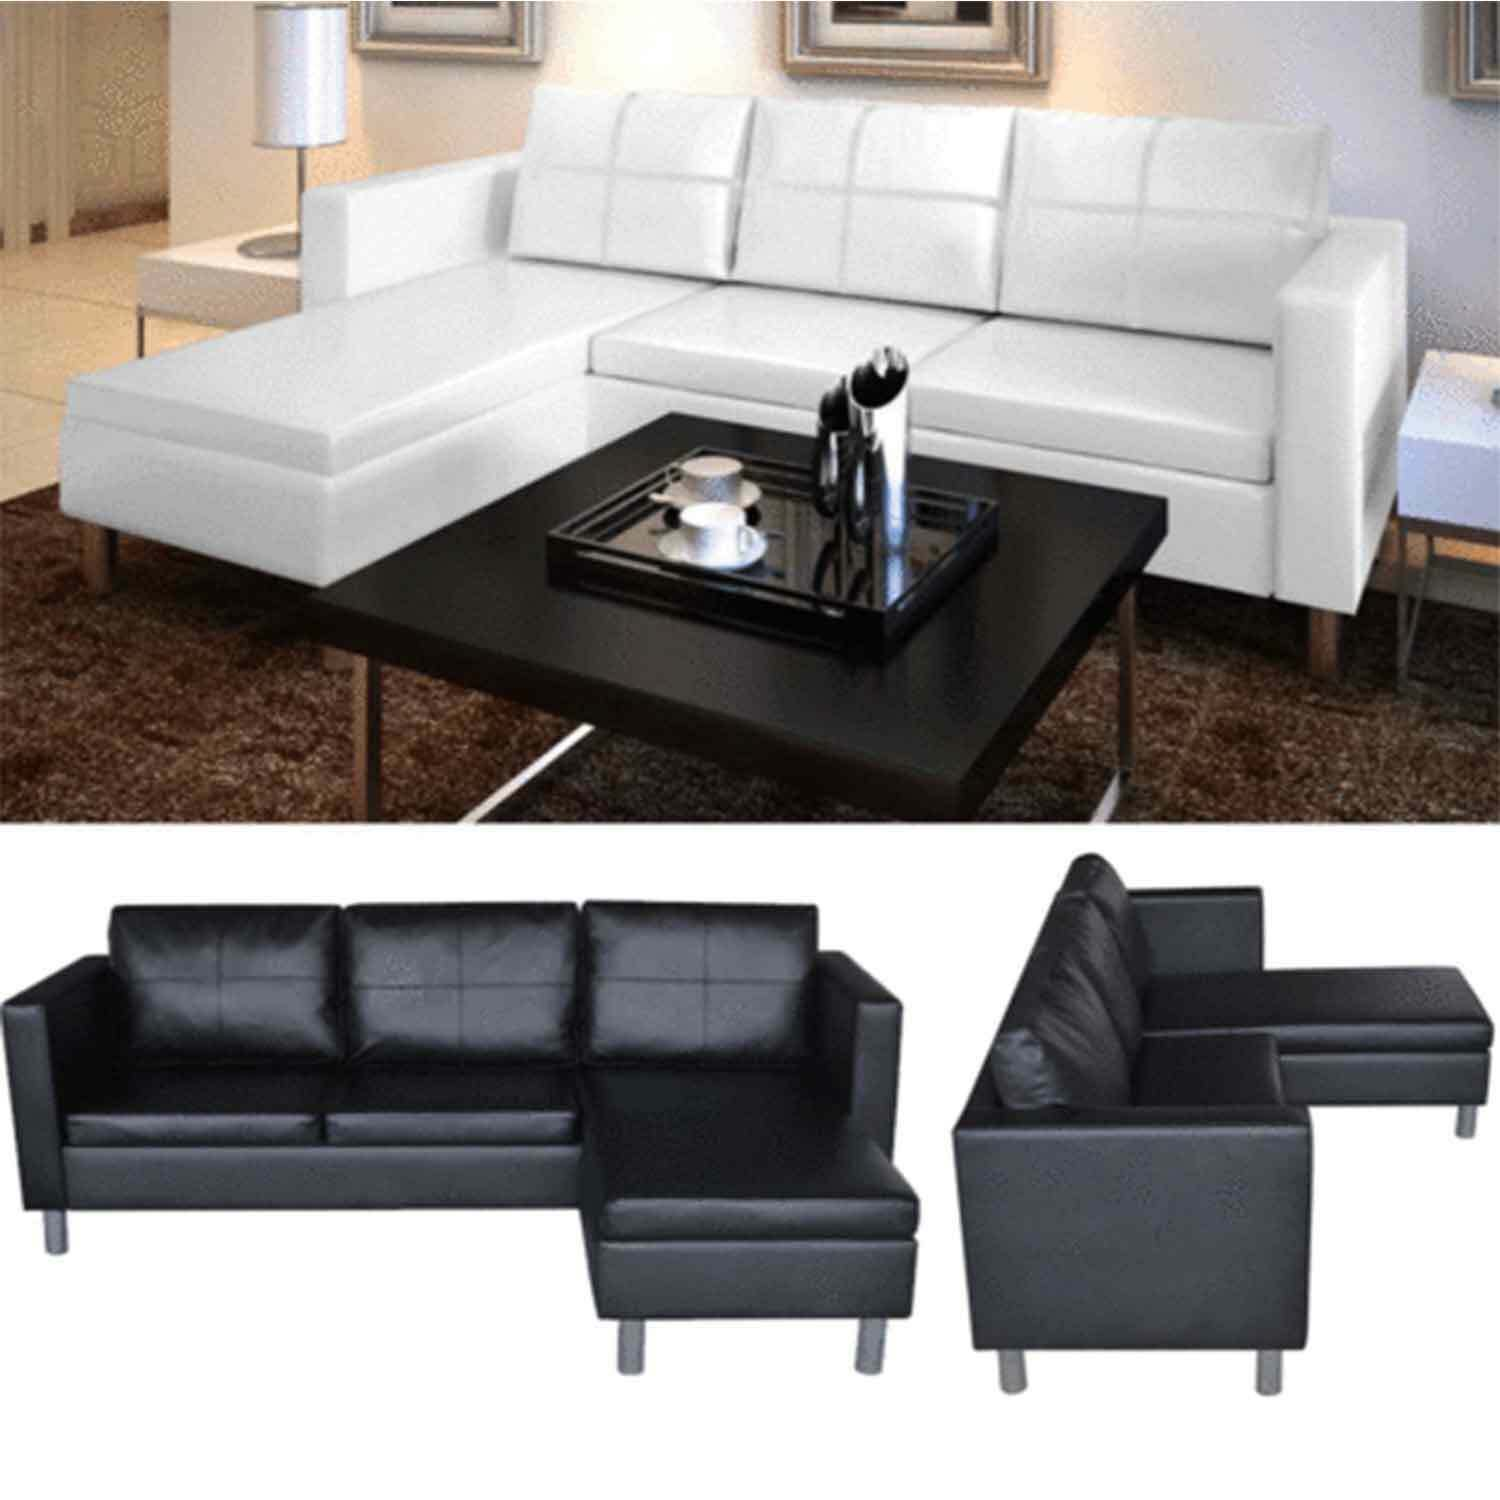 leather sectional sofa 3 seater l shaped chaise lounge living room couch bed set